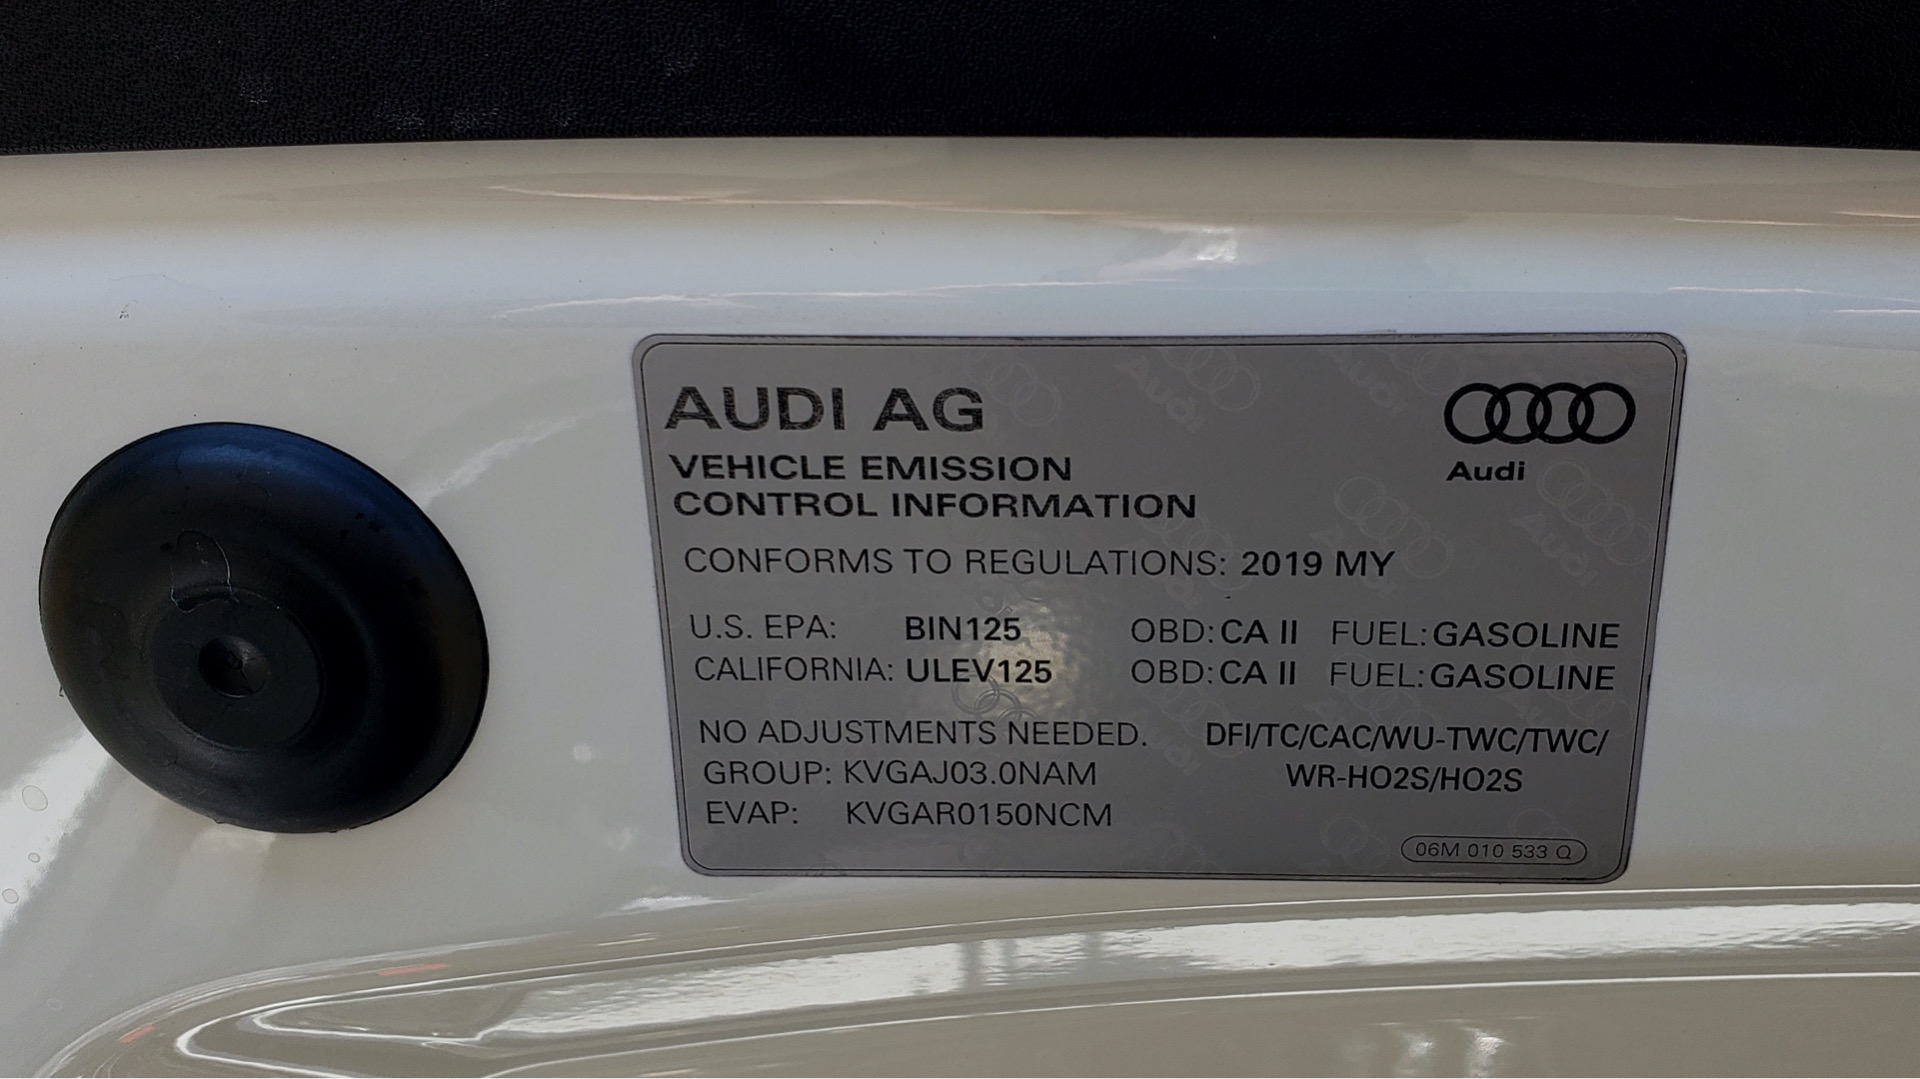 Used 2019 Audi Q8 PRESTIGE S-LINE / LUX PKG / ADAPT CHASSIS / YEAR ONE / CLD WTHR for sale Sold at Formula Imports in Charlotte NC 28227 19